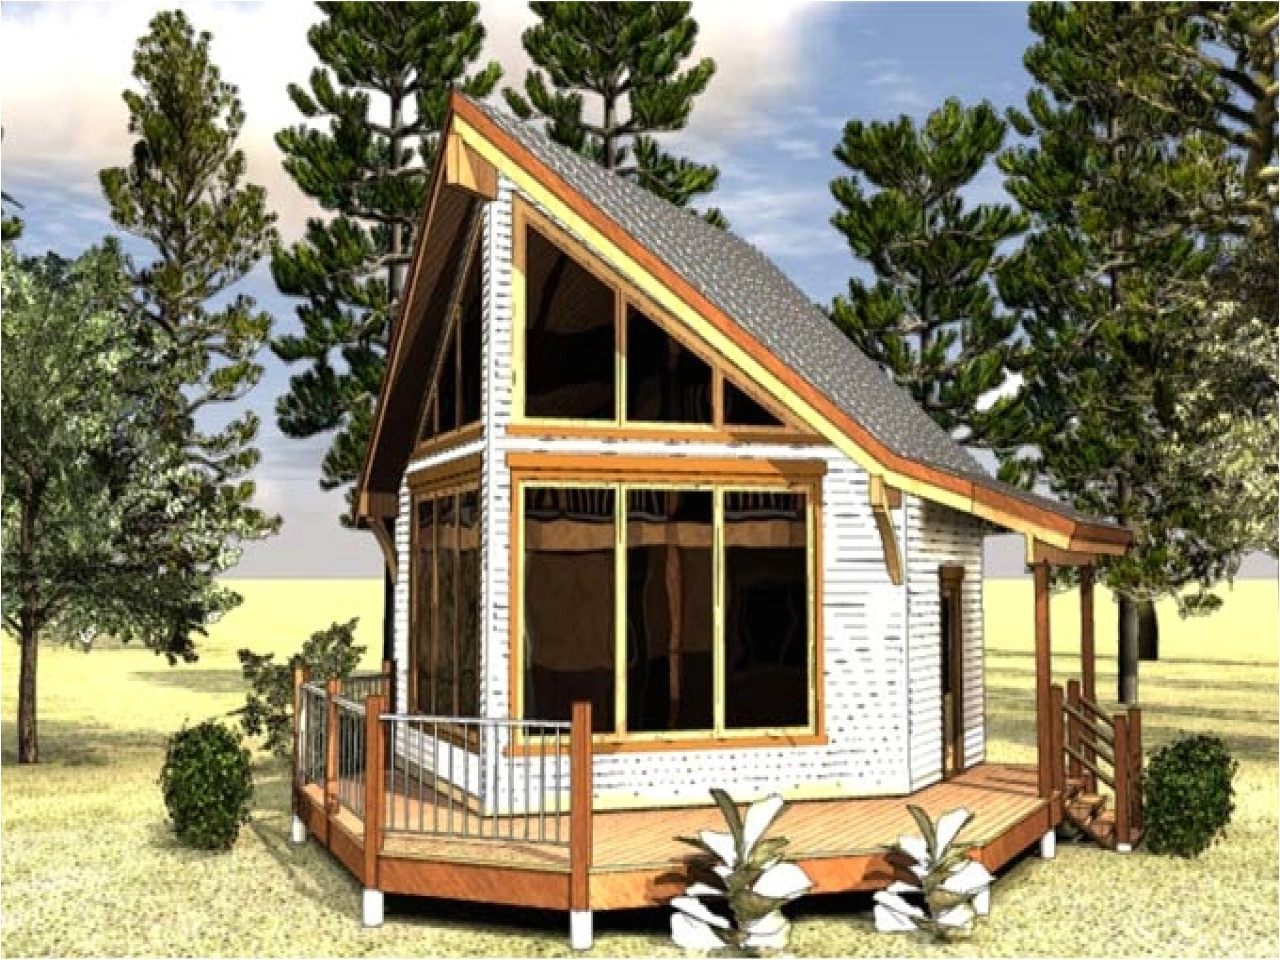 7b3271b5fcb3dc46 cabin small house floor plans small cabin house plans with loft